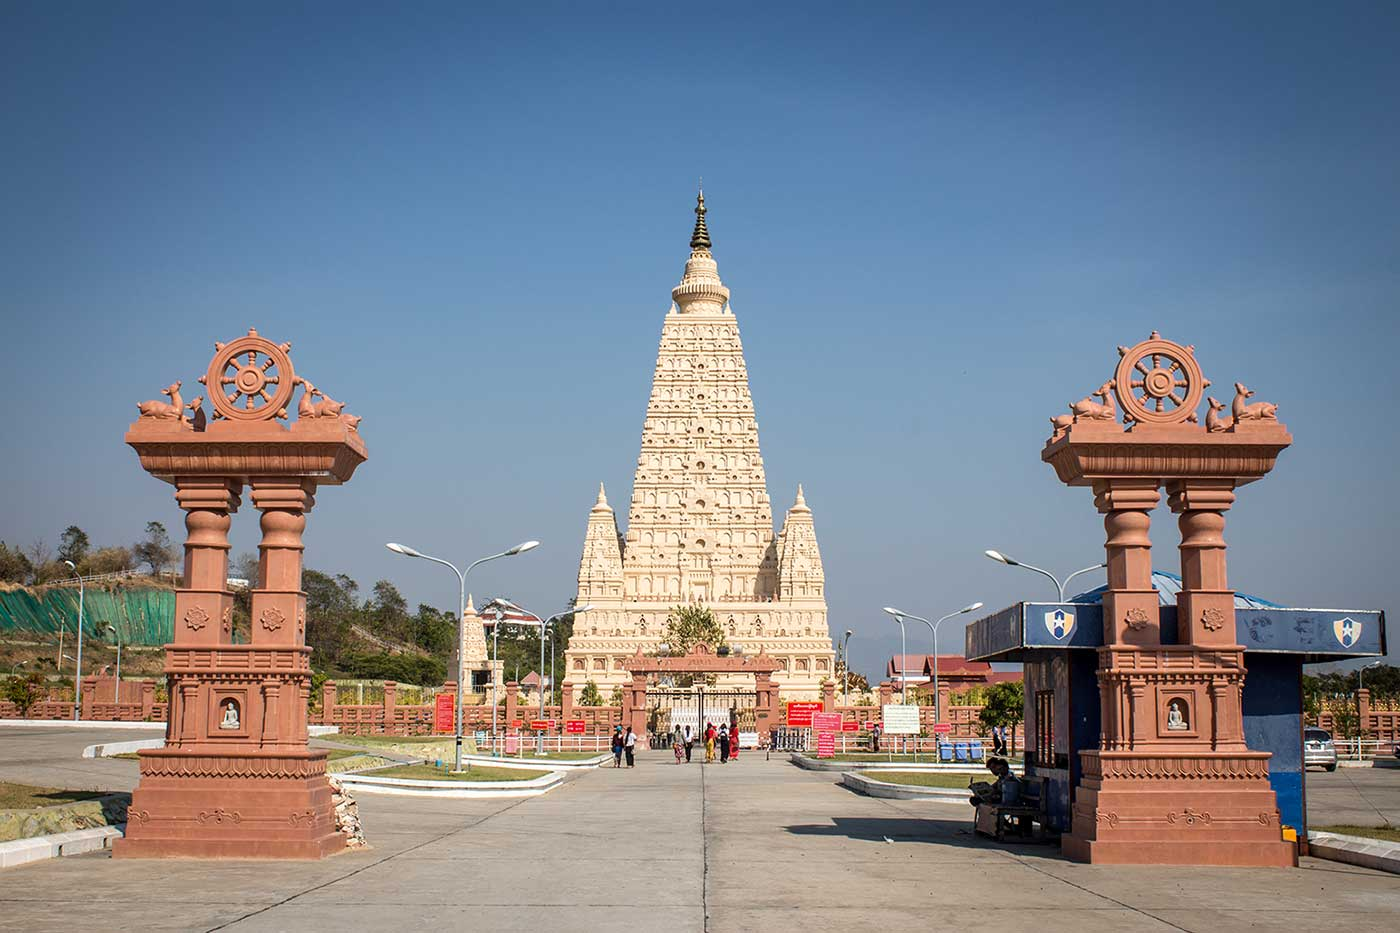 The Thatta Thattaha Maha Bawdi Pagoda enjoys a steady stream of visitors. It was built in 2013, modelled on a famous pagoda in India.